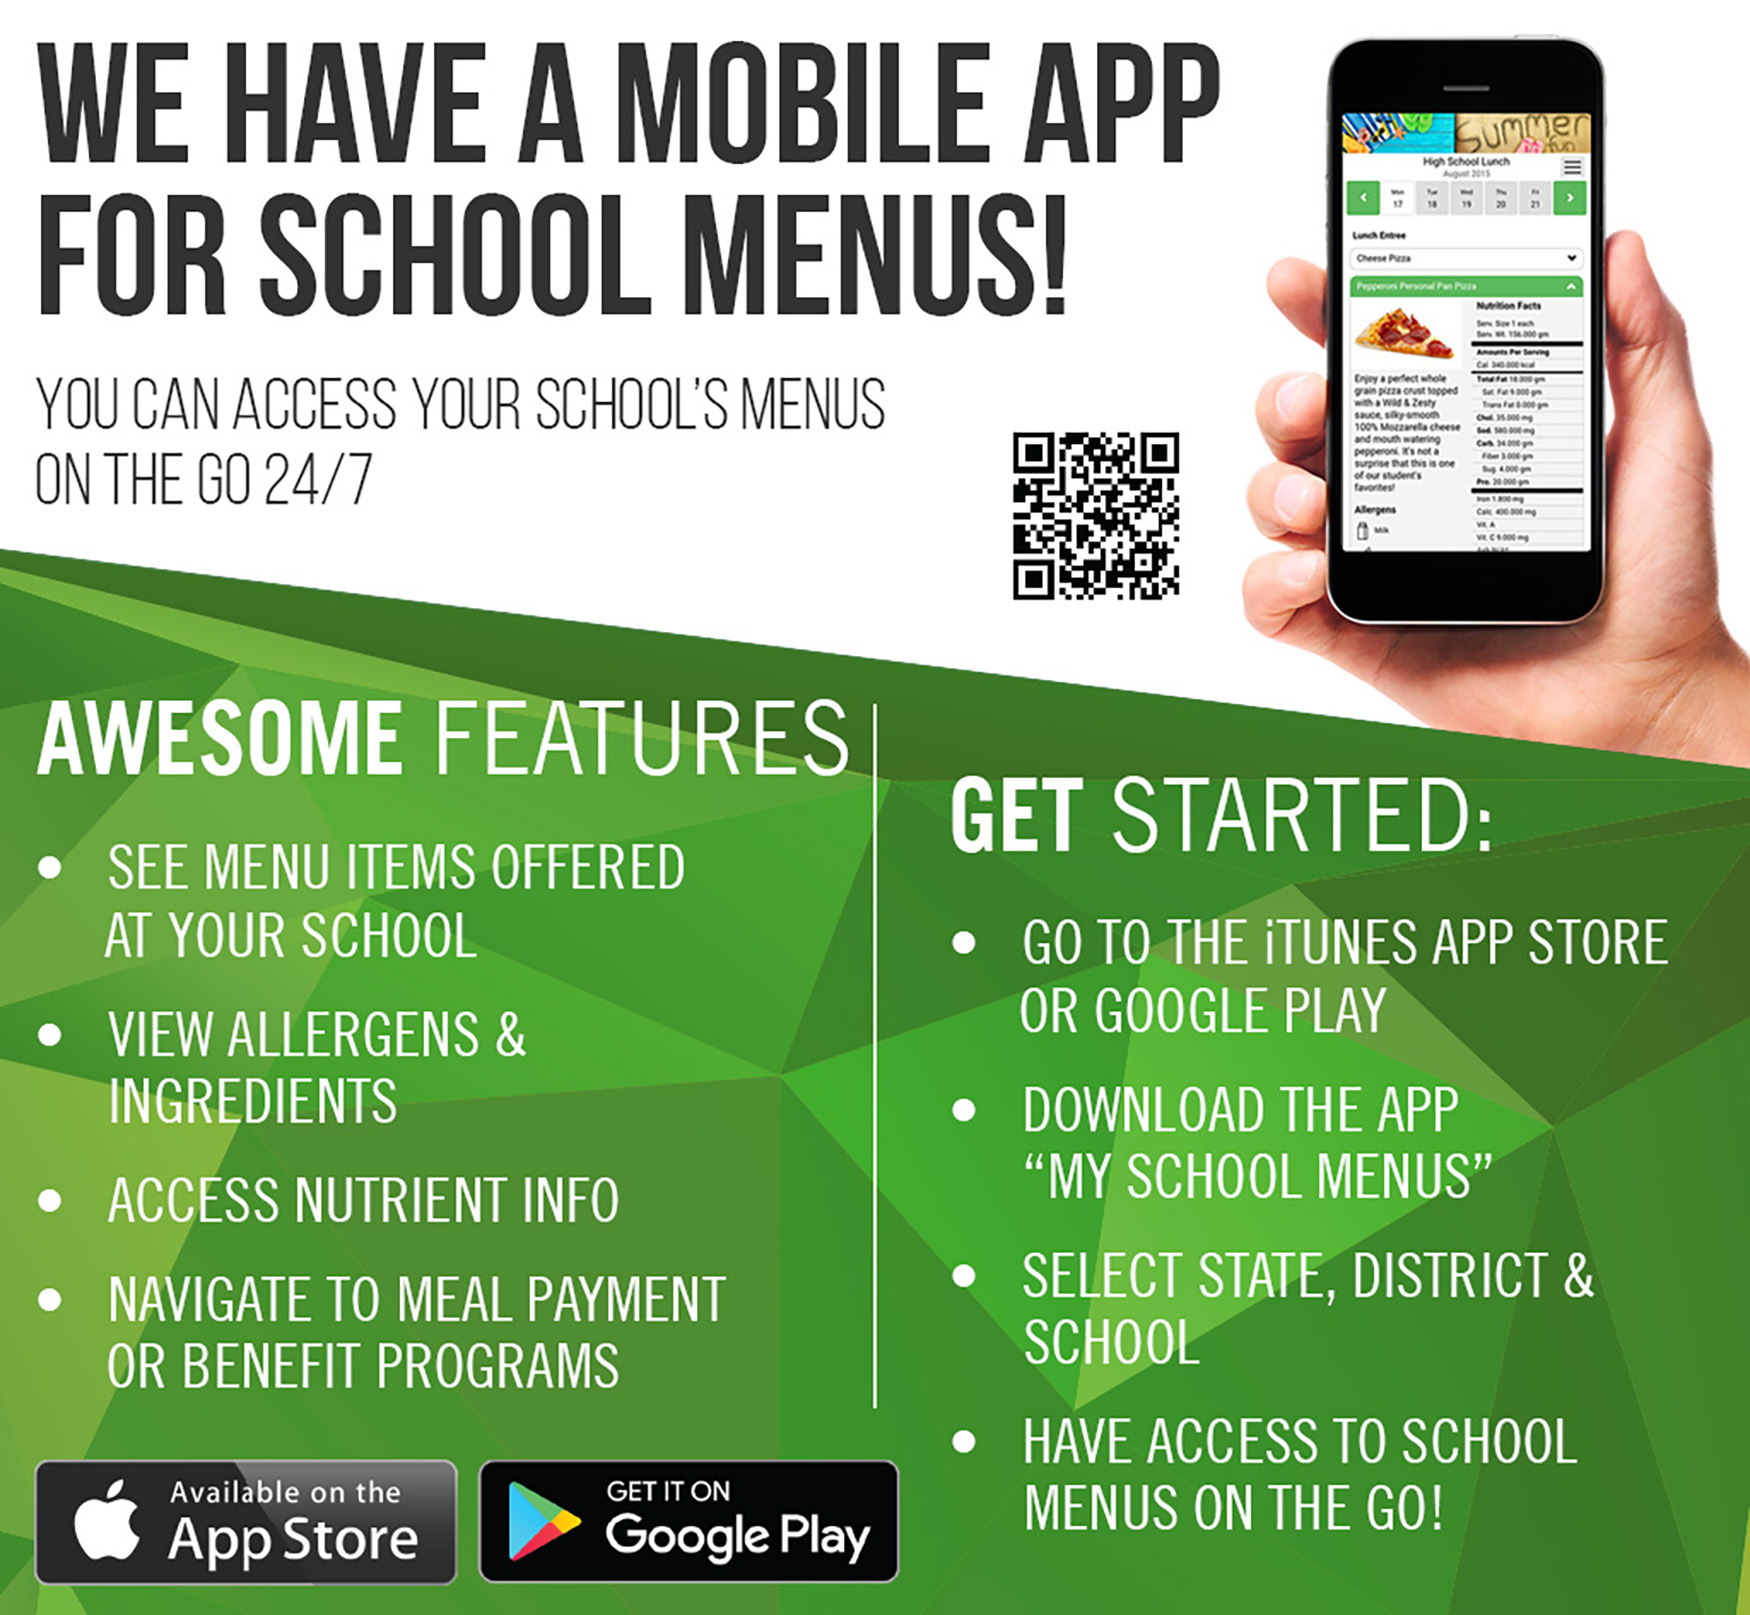 My School Menus App Flyer 2019